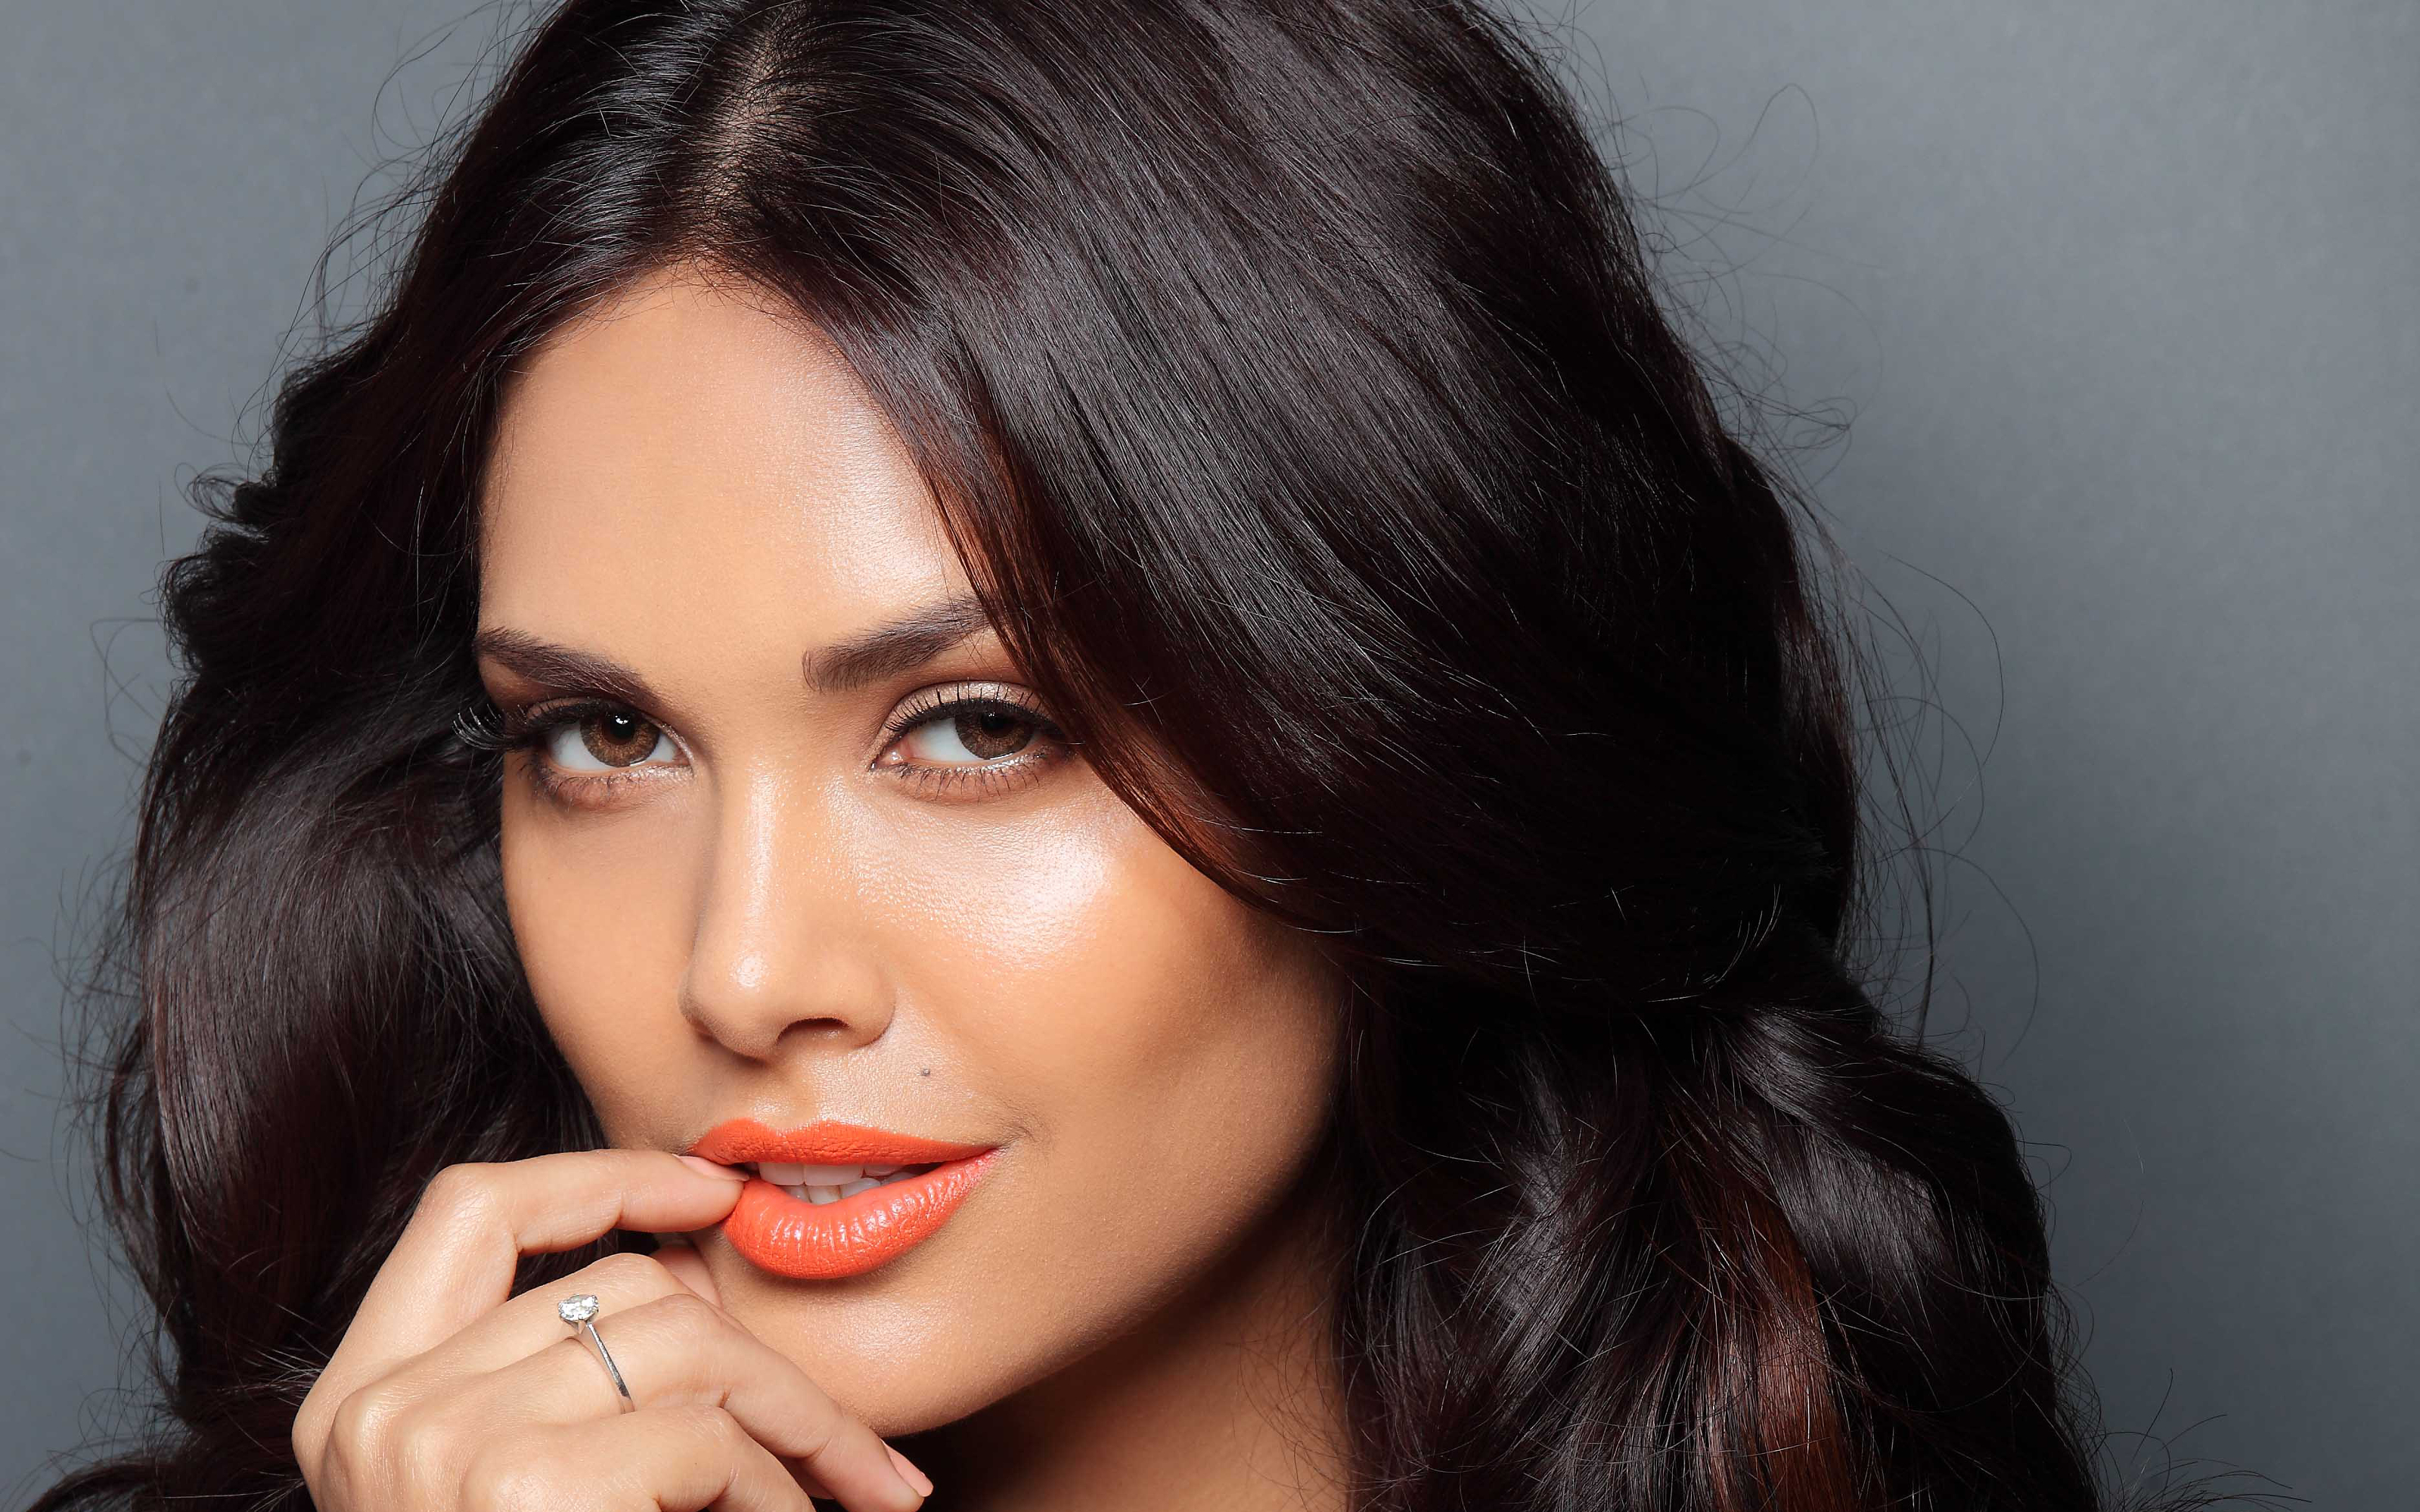 22 Esha Gupta HD Wallpaper Photos And Images